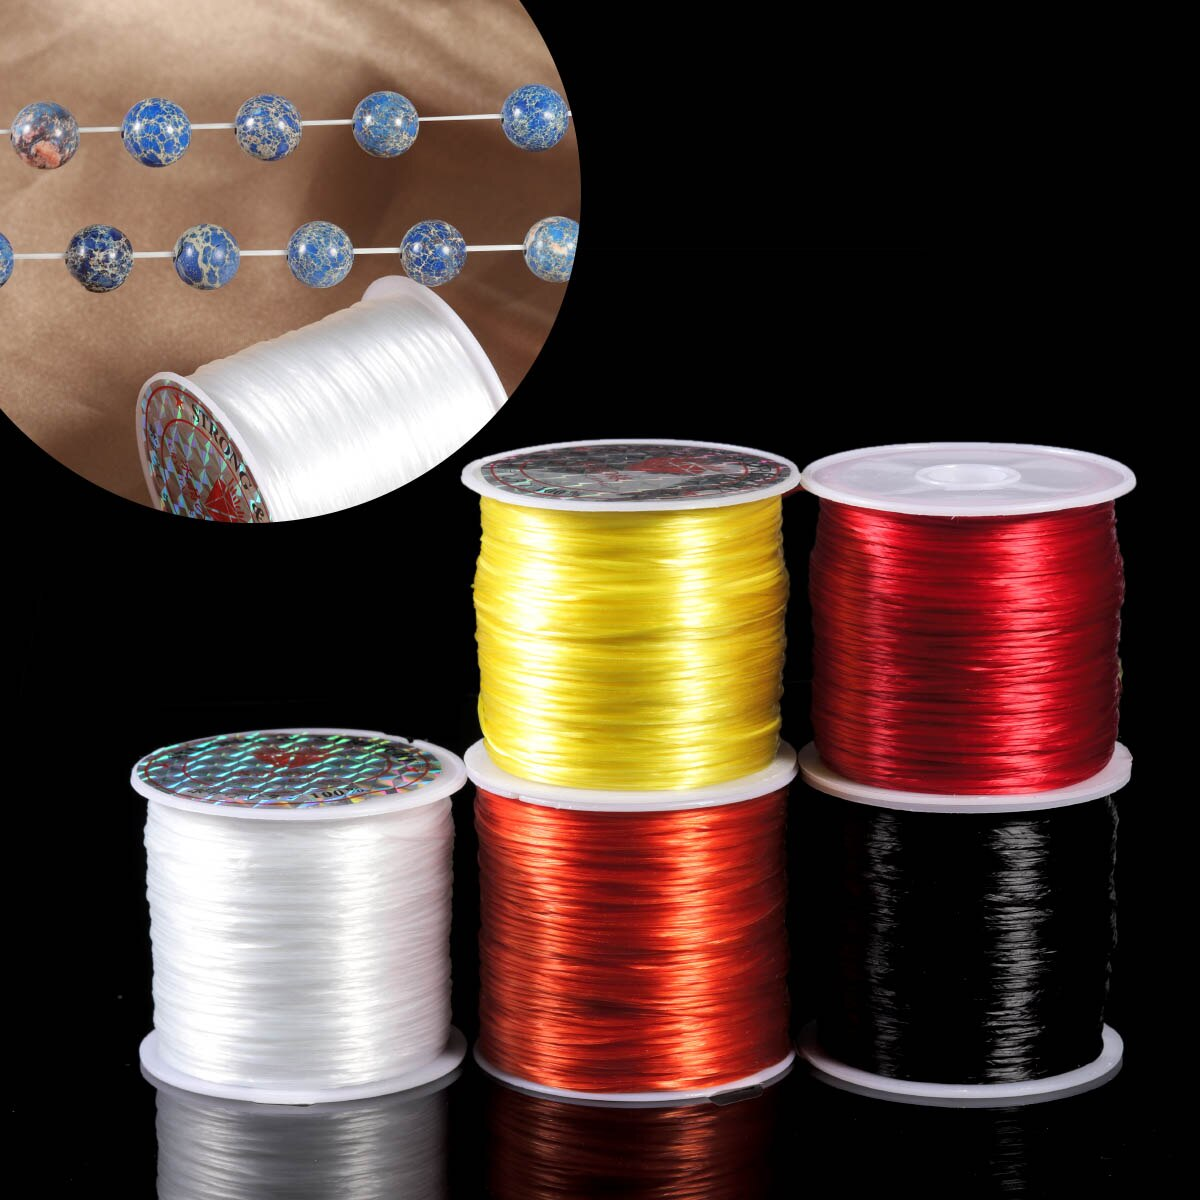 393inch/Roll Strong Elastic Crystal Beading Cord 1mm for Bracelets Stretch Thread String Necklace DIY Jewelry Making Cords Line